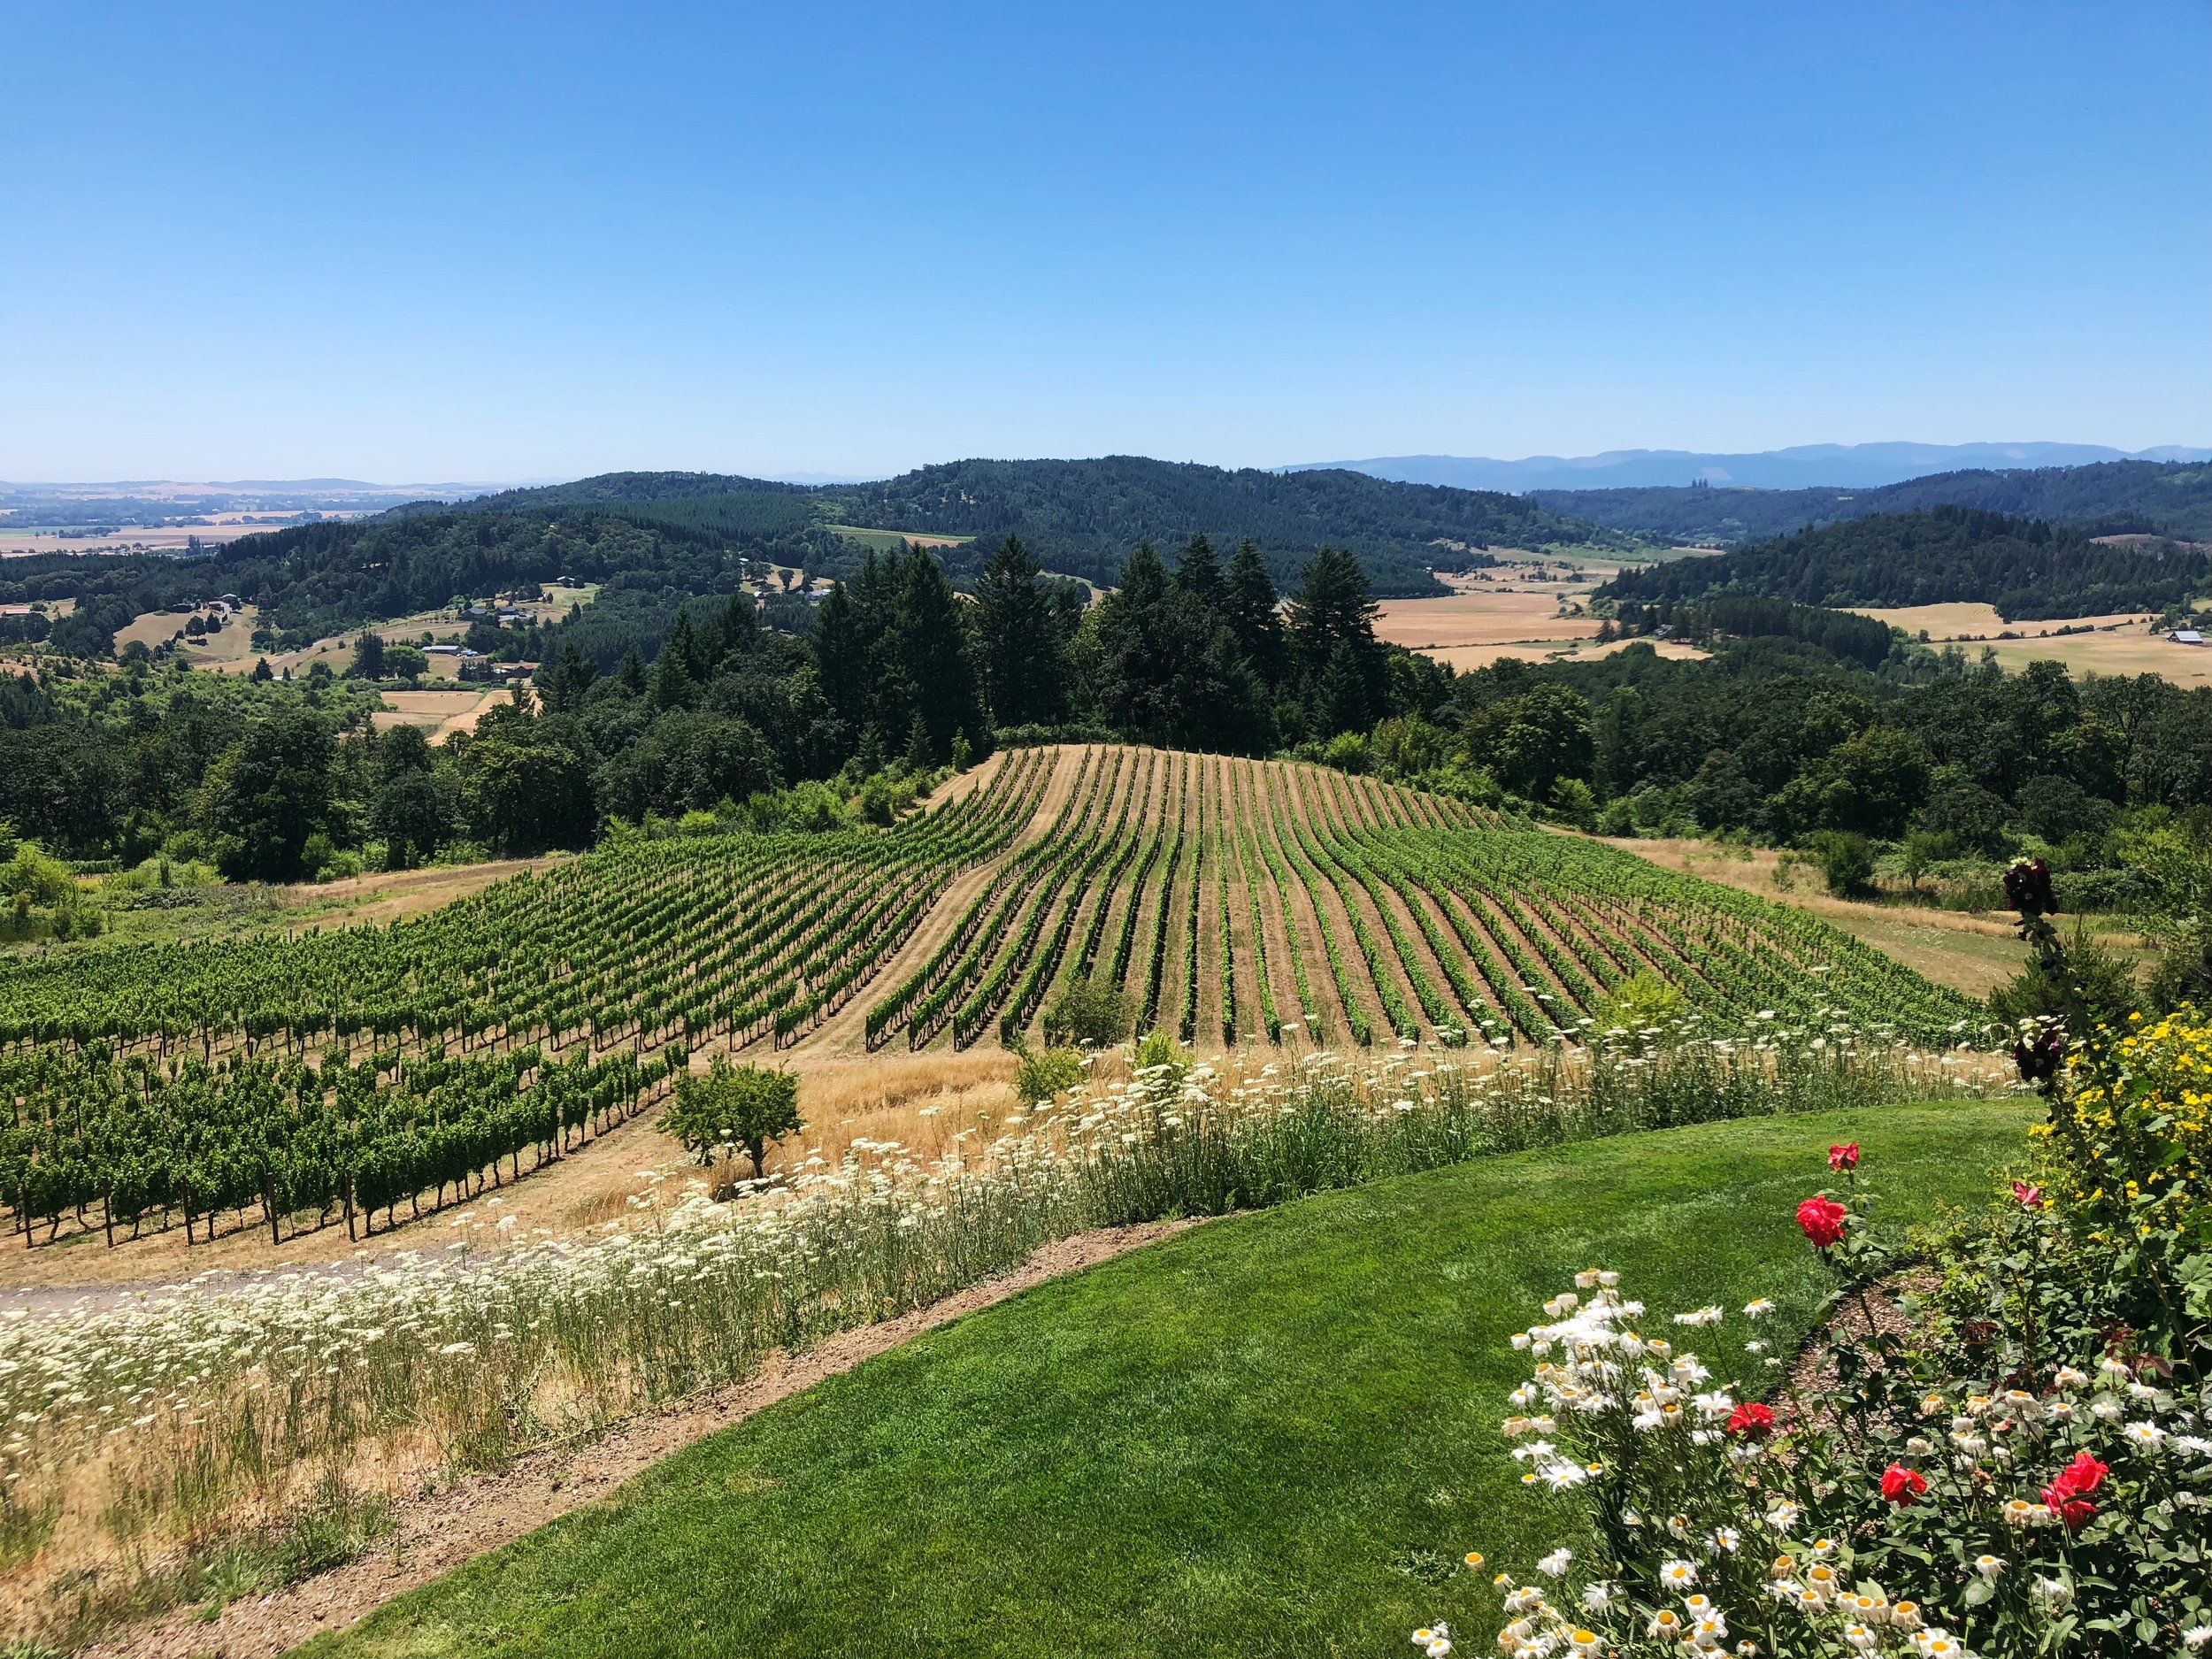 THE JOURNAL'S TRAVEL GUIDE: - NAPA VALLEY, CA